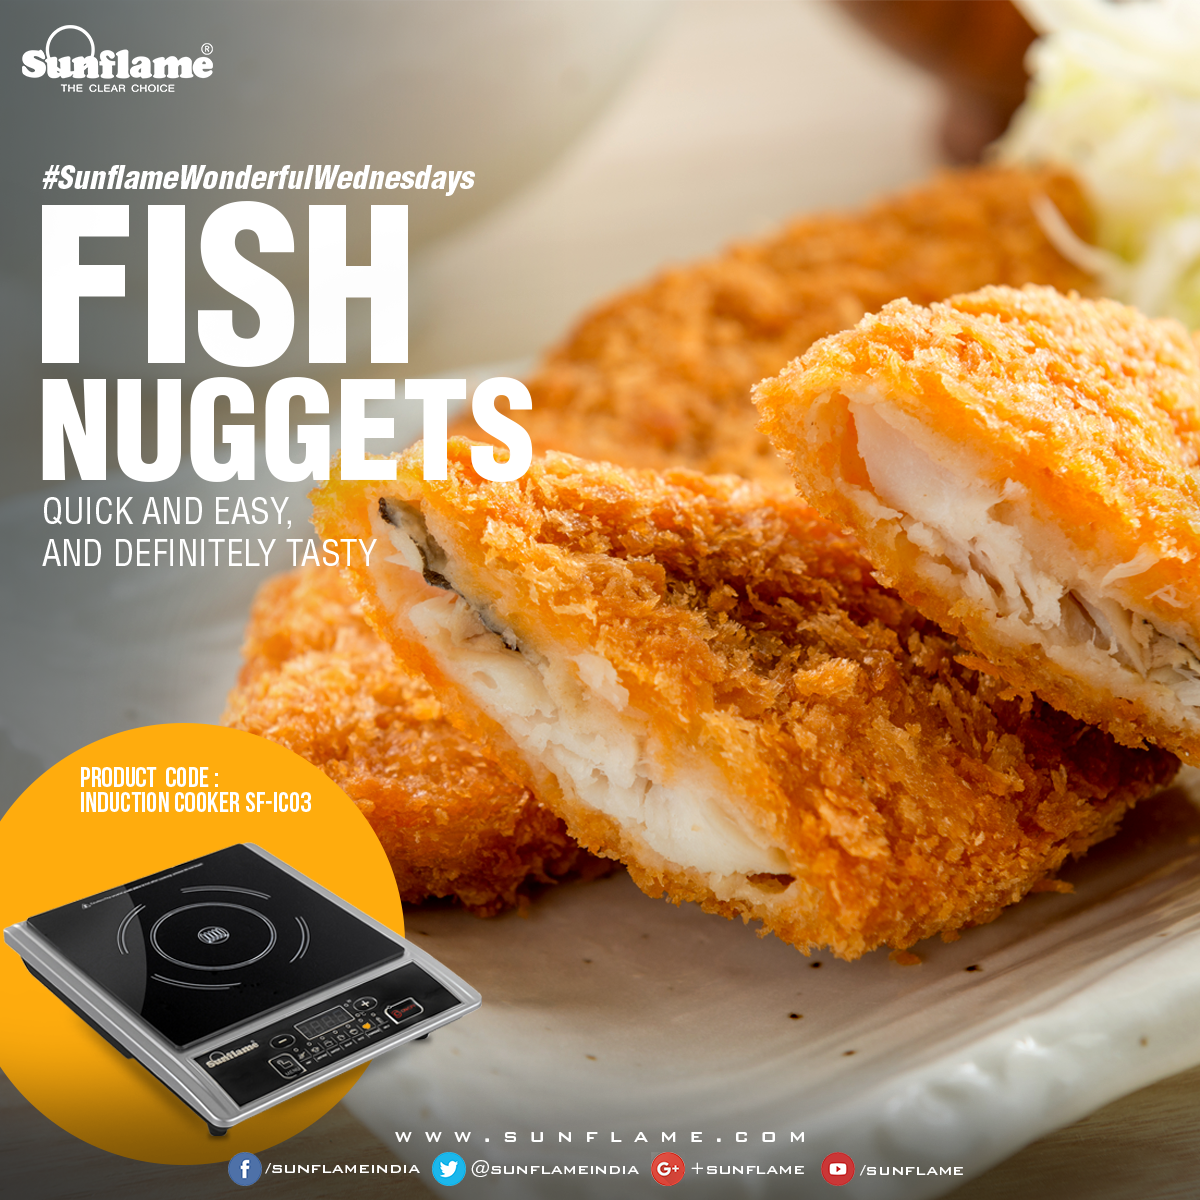 Sunflame FISH NUGGETS